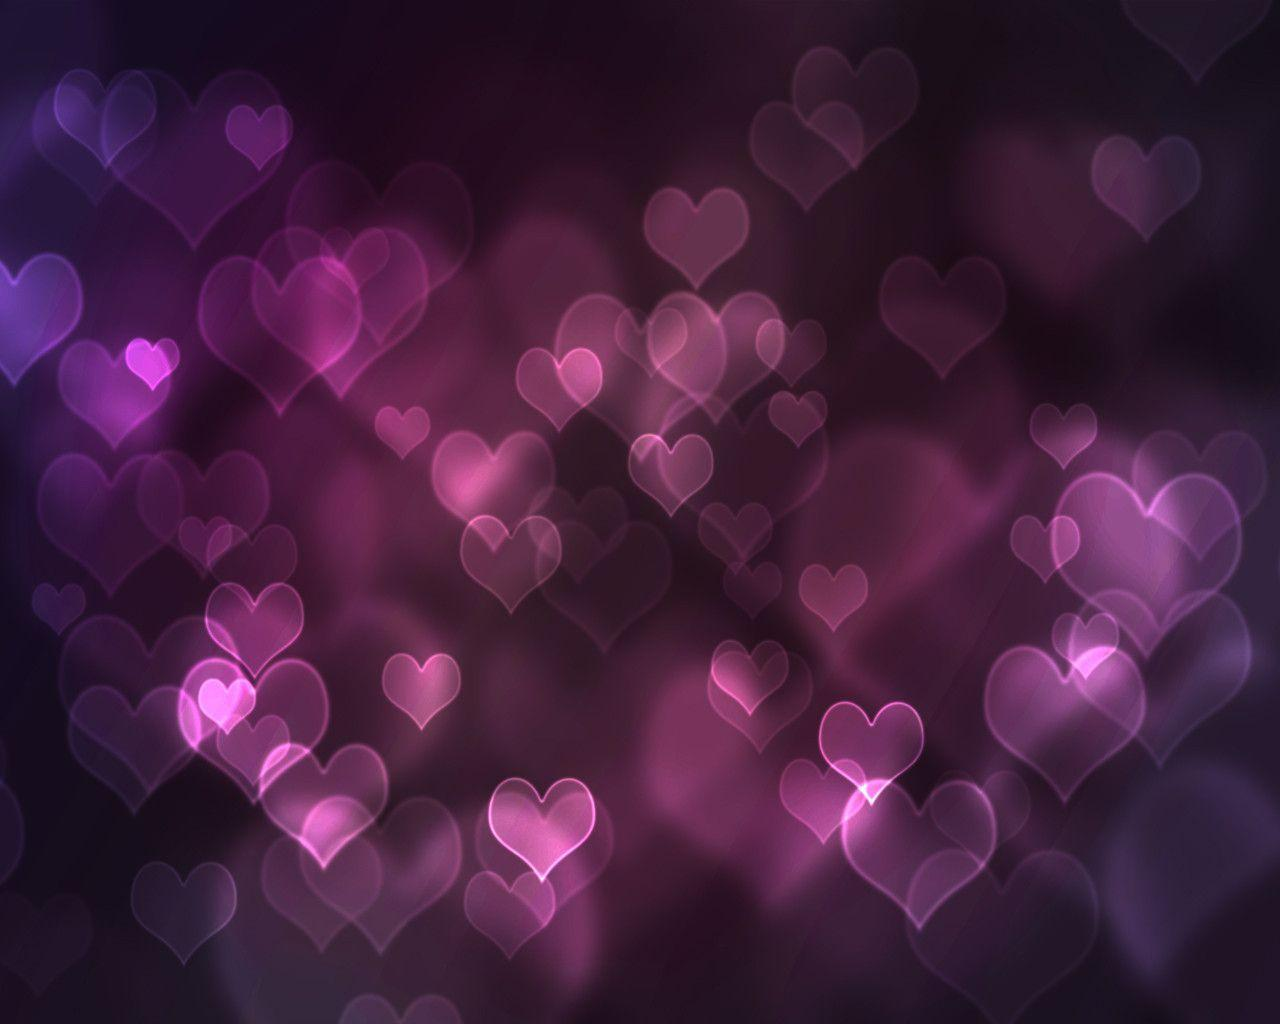 Wallpapers For Purple Hearts And Stars Background